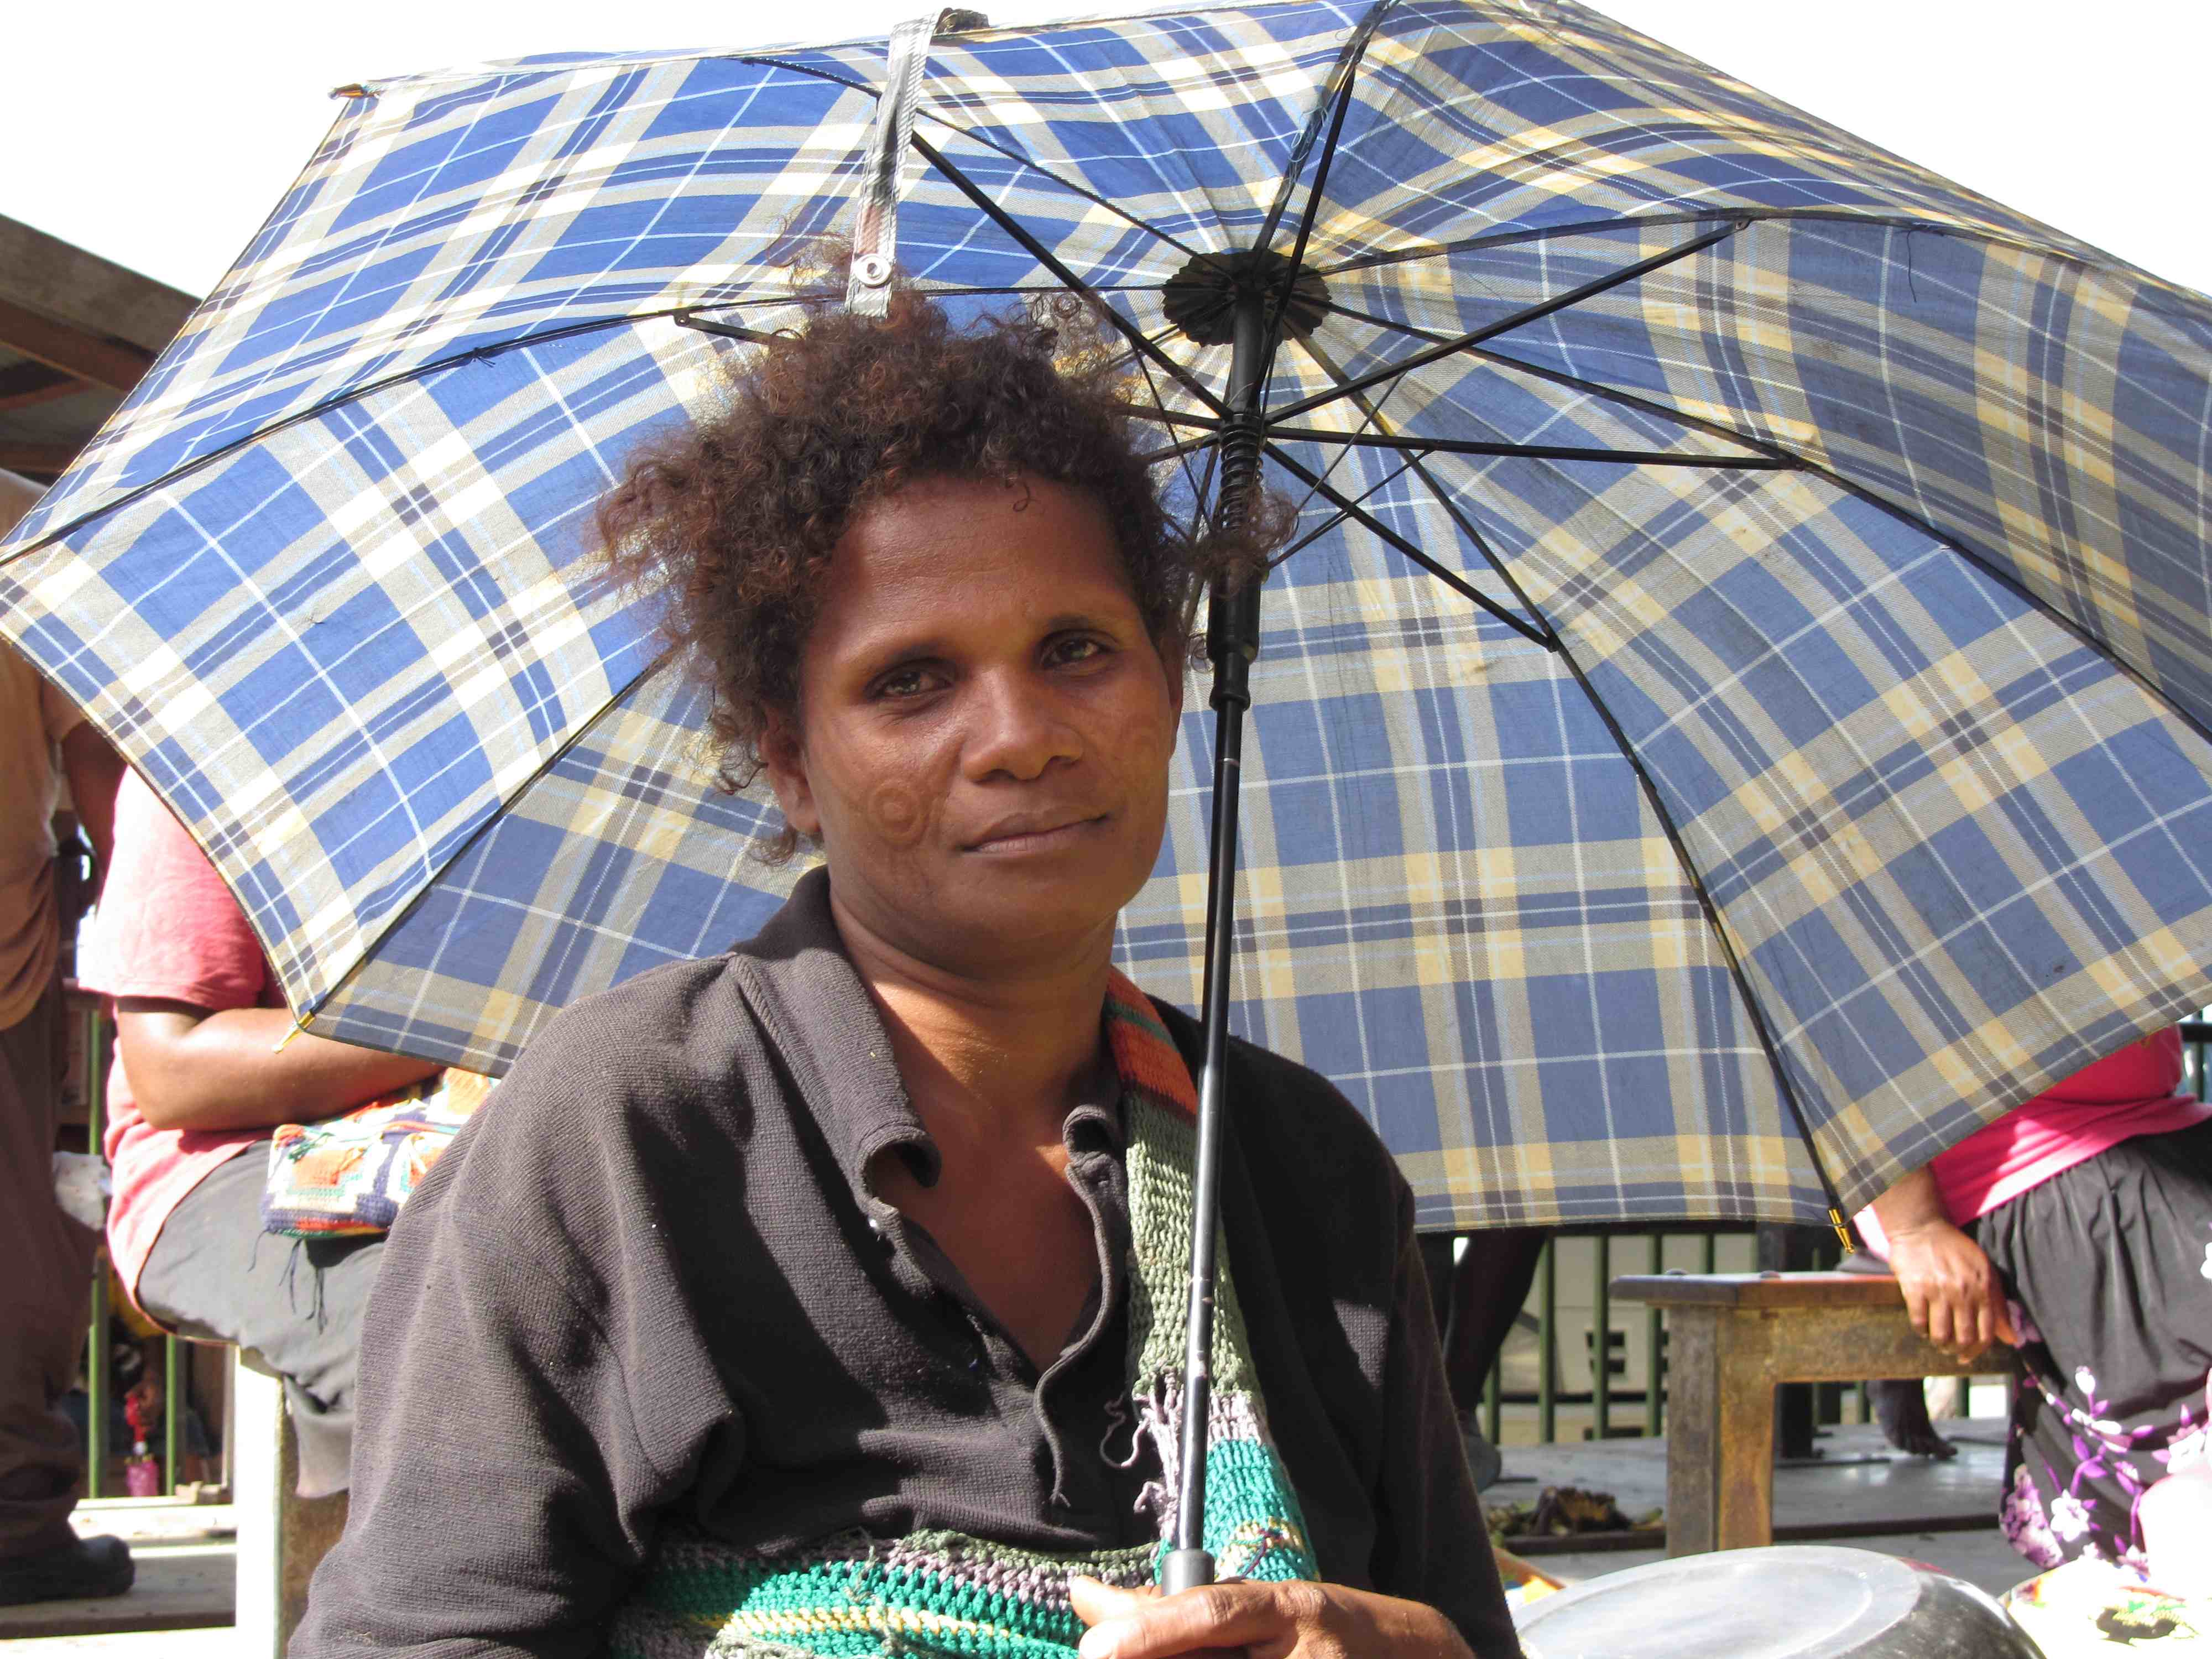 Beautiful banana seller seeks shade under umbrella, Central Market, Honiara, Solomon Islands